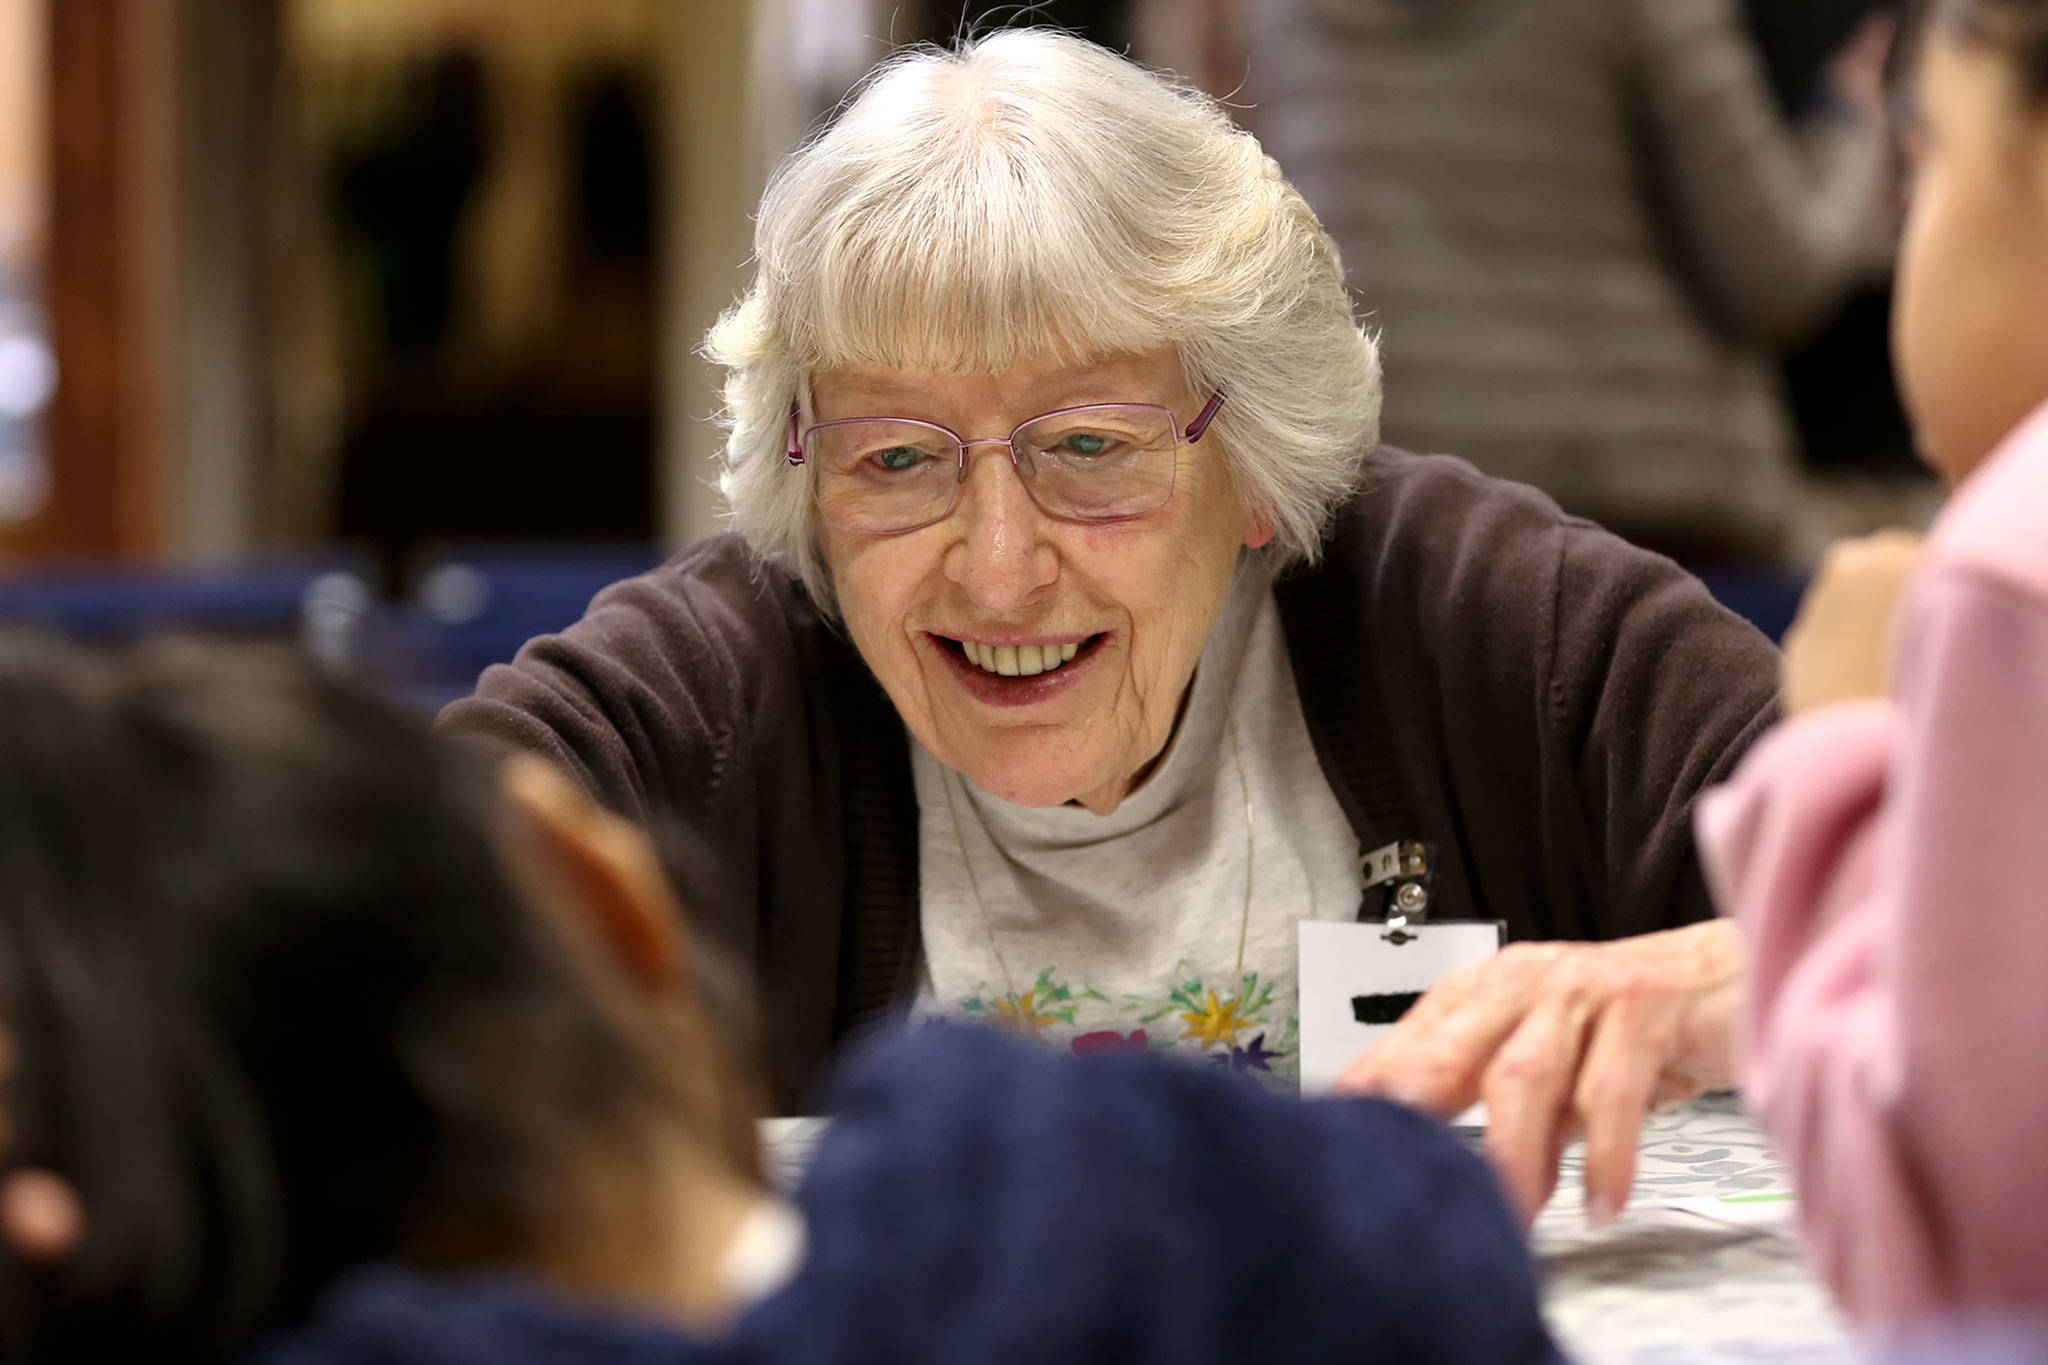 Margaret Ray helps students with worksheets in Monroe on Nov. 19. (Kevin Clark / The Herald)